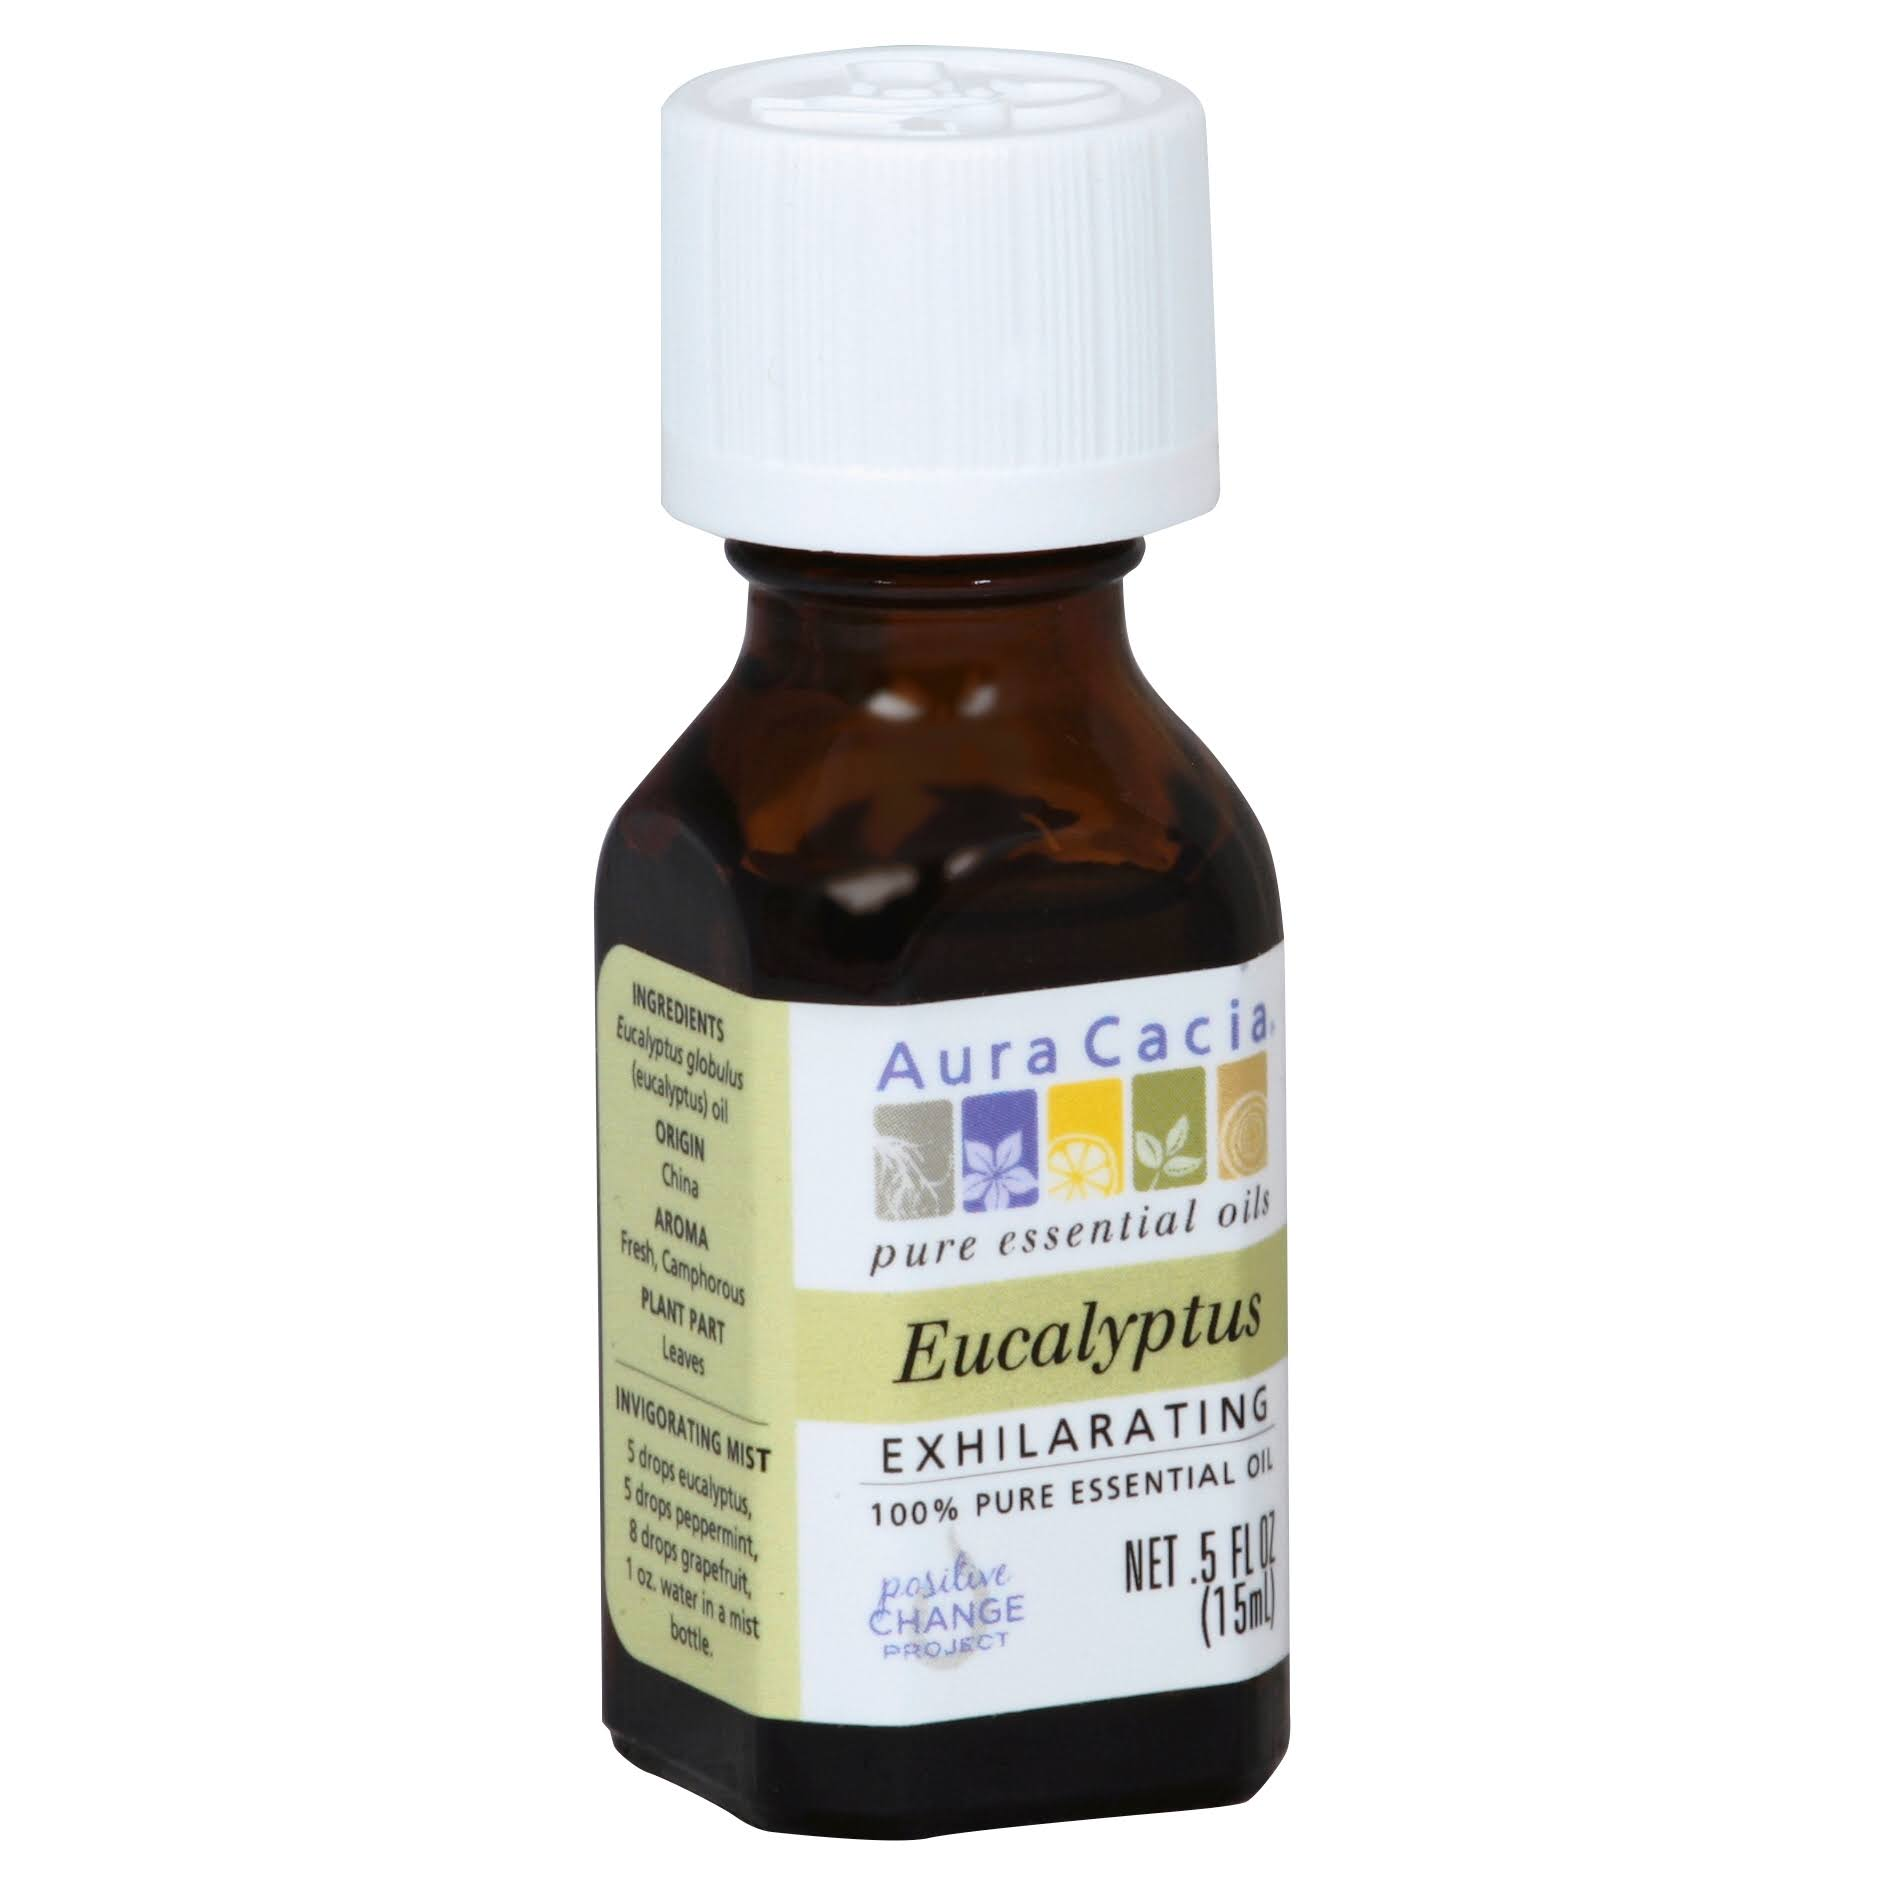 Aura Cacia Essential Oil - Eucalyptus, 75ml